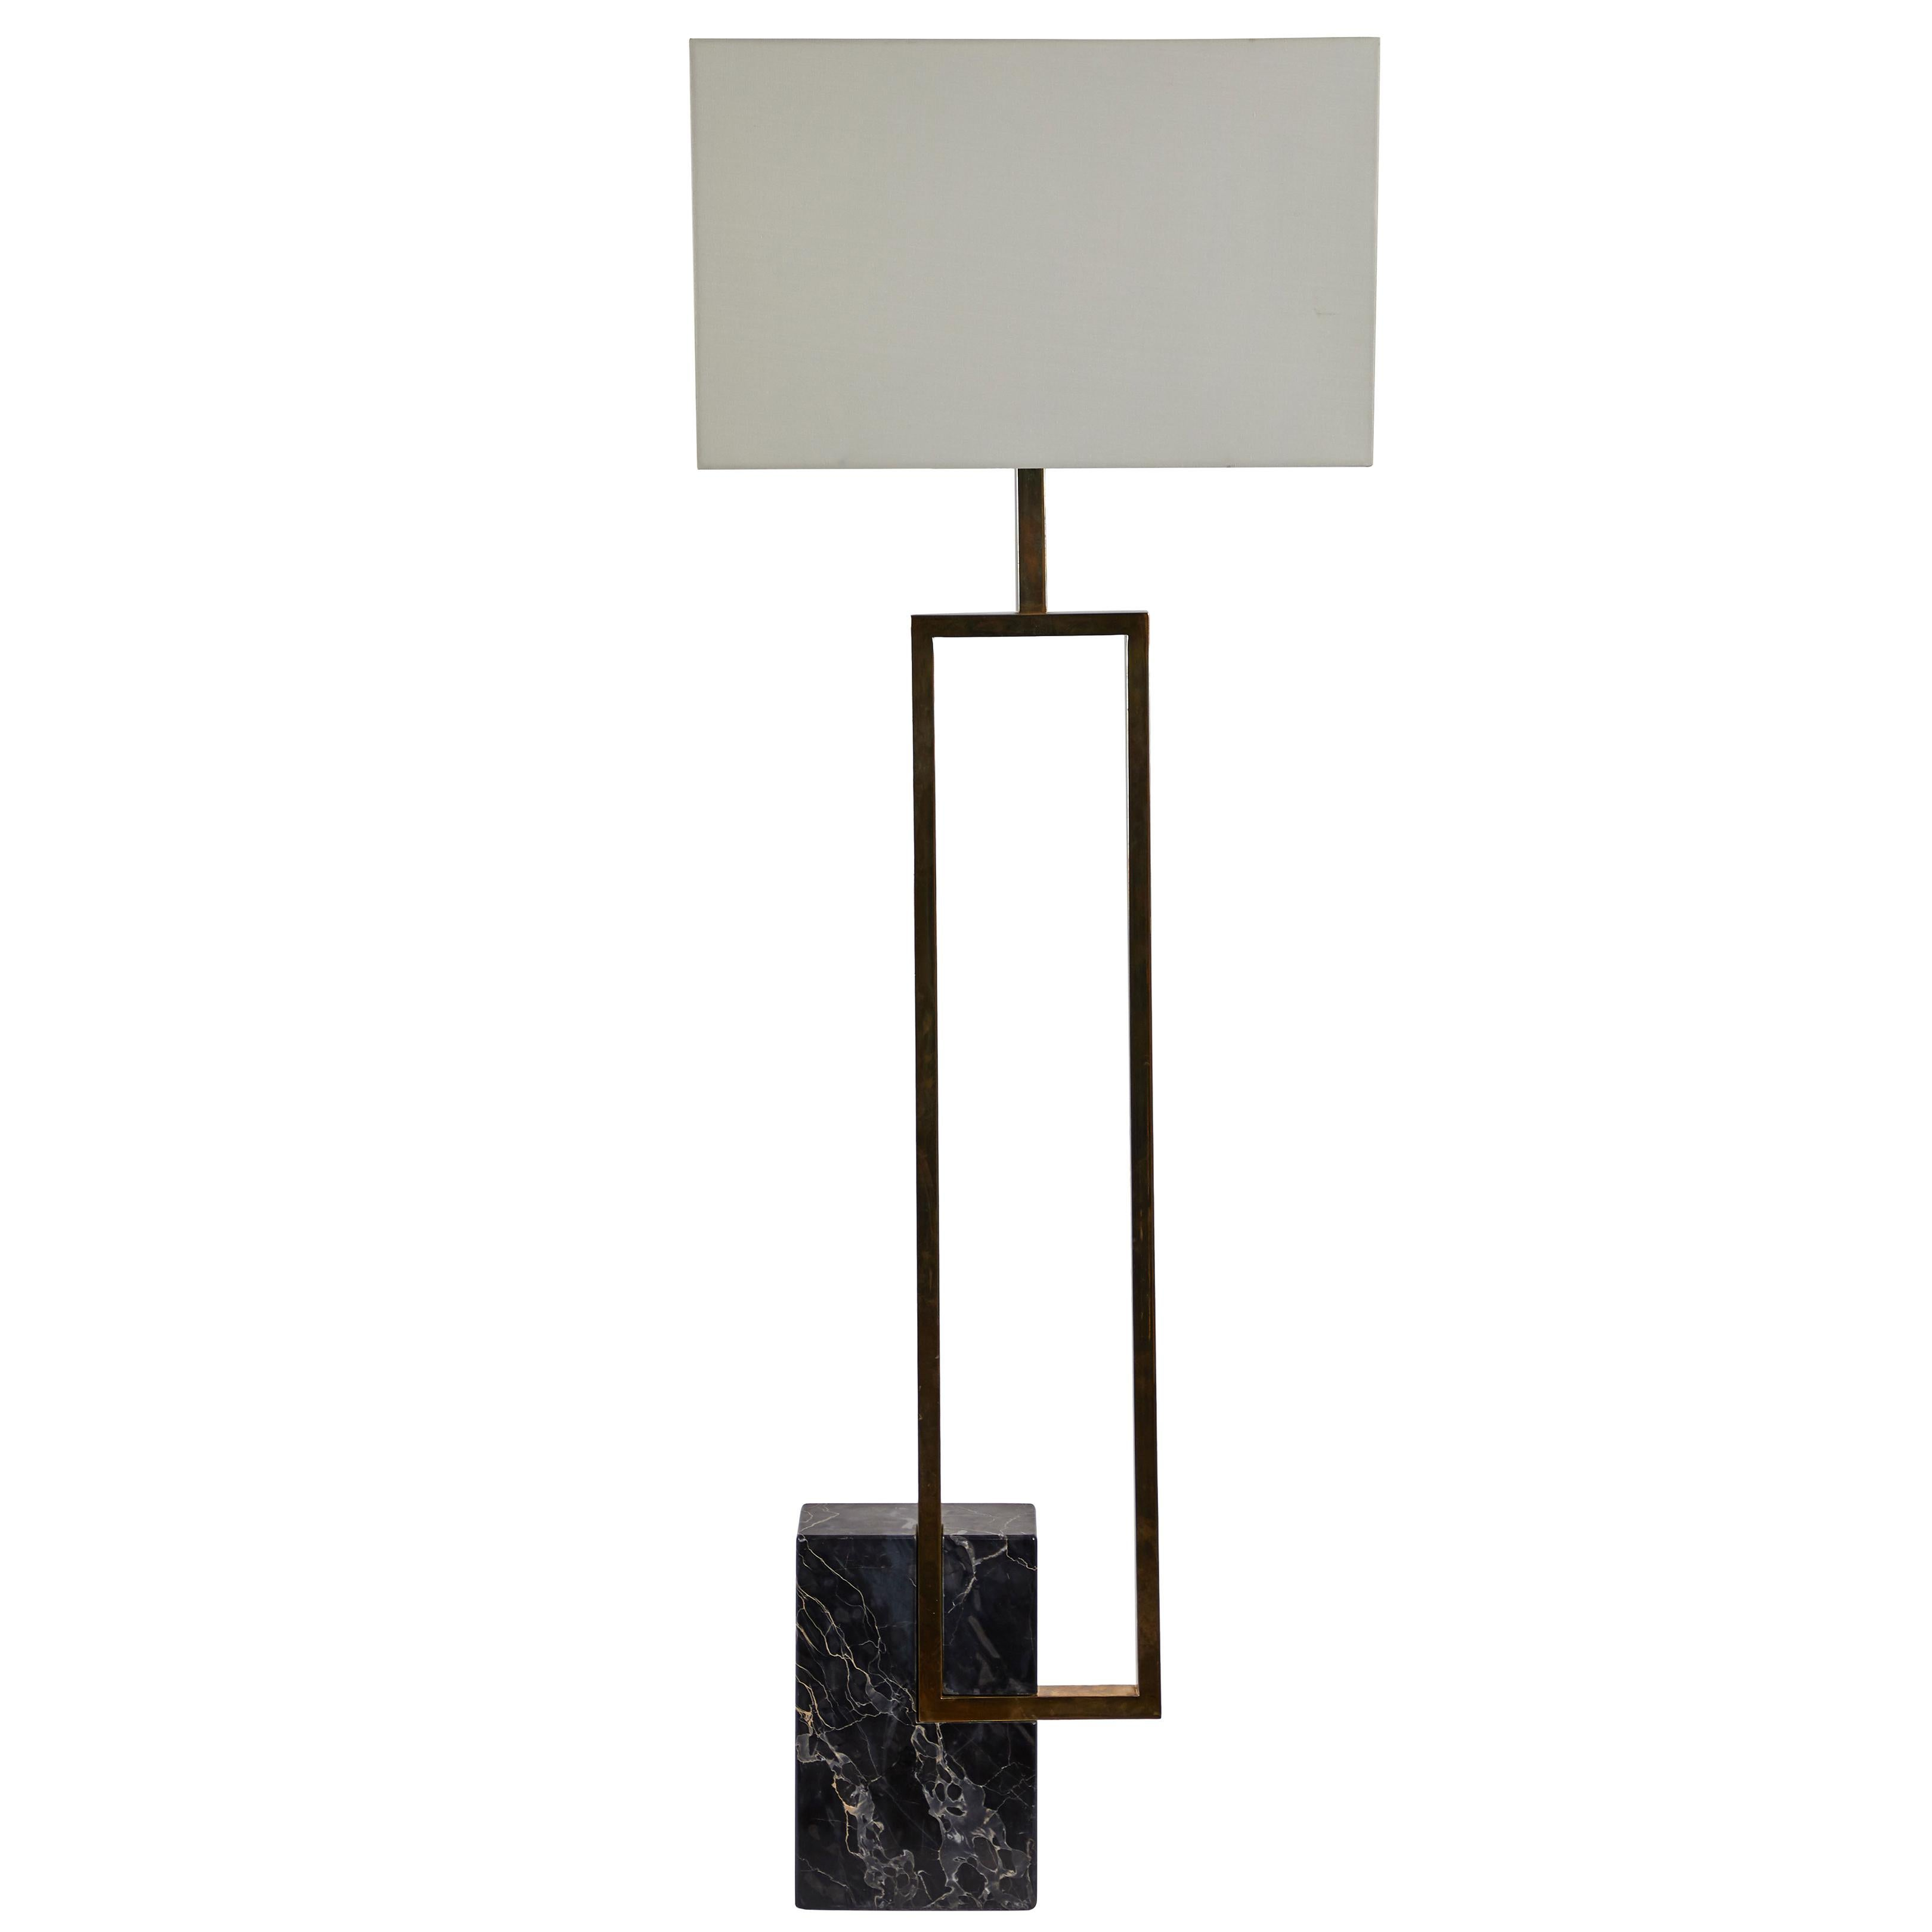 floor lamp by giovanni banci for banci firenze for sale at 1stdibs rh 1stdibs com Rewire Lamp Snap Connector Electric Lamp Rewiring